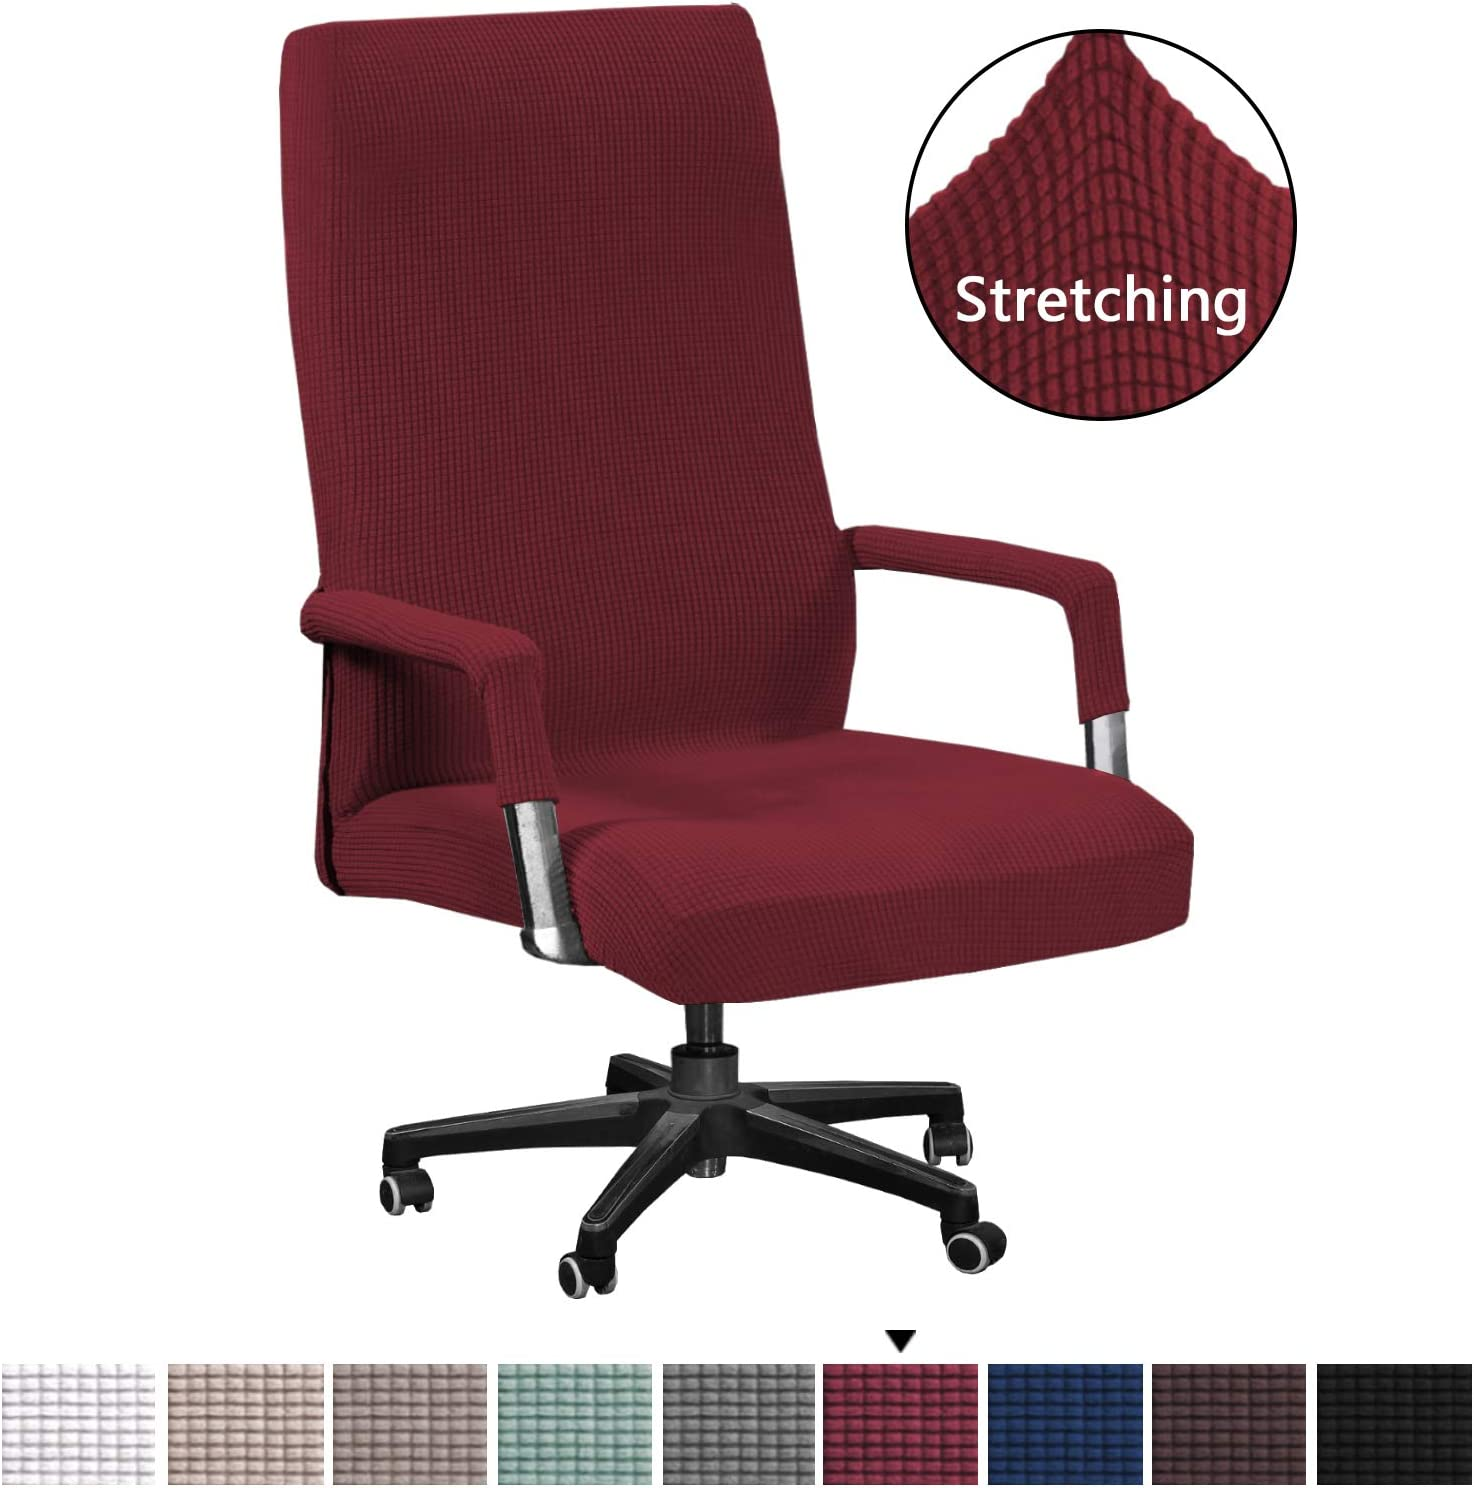 H.VERSAILTEX Burgundy Red Office Chair Covers with Arm Covers Featuring Jacquard Textured Twill Fabric Computer Chair/Desk Chair/Boss Chair/Rotating Chair/Executive Chair Cover, Oversized